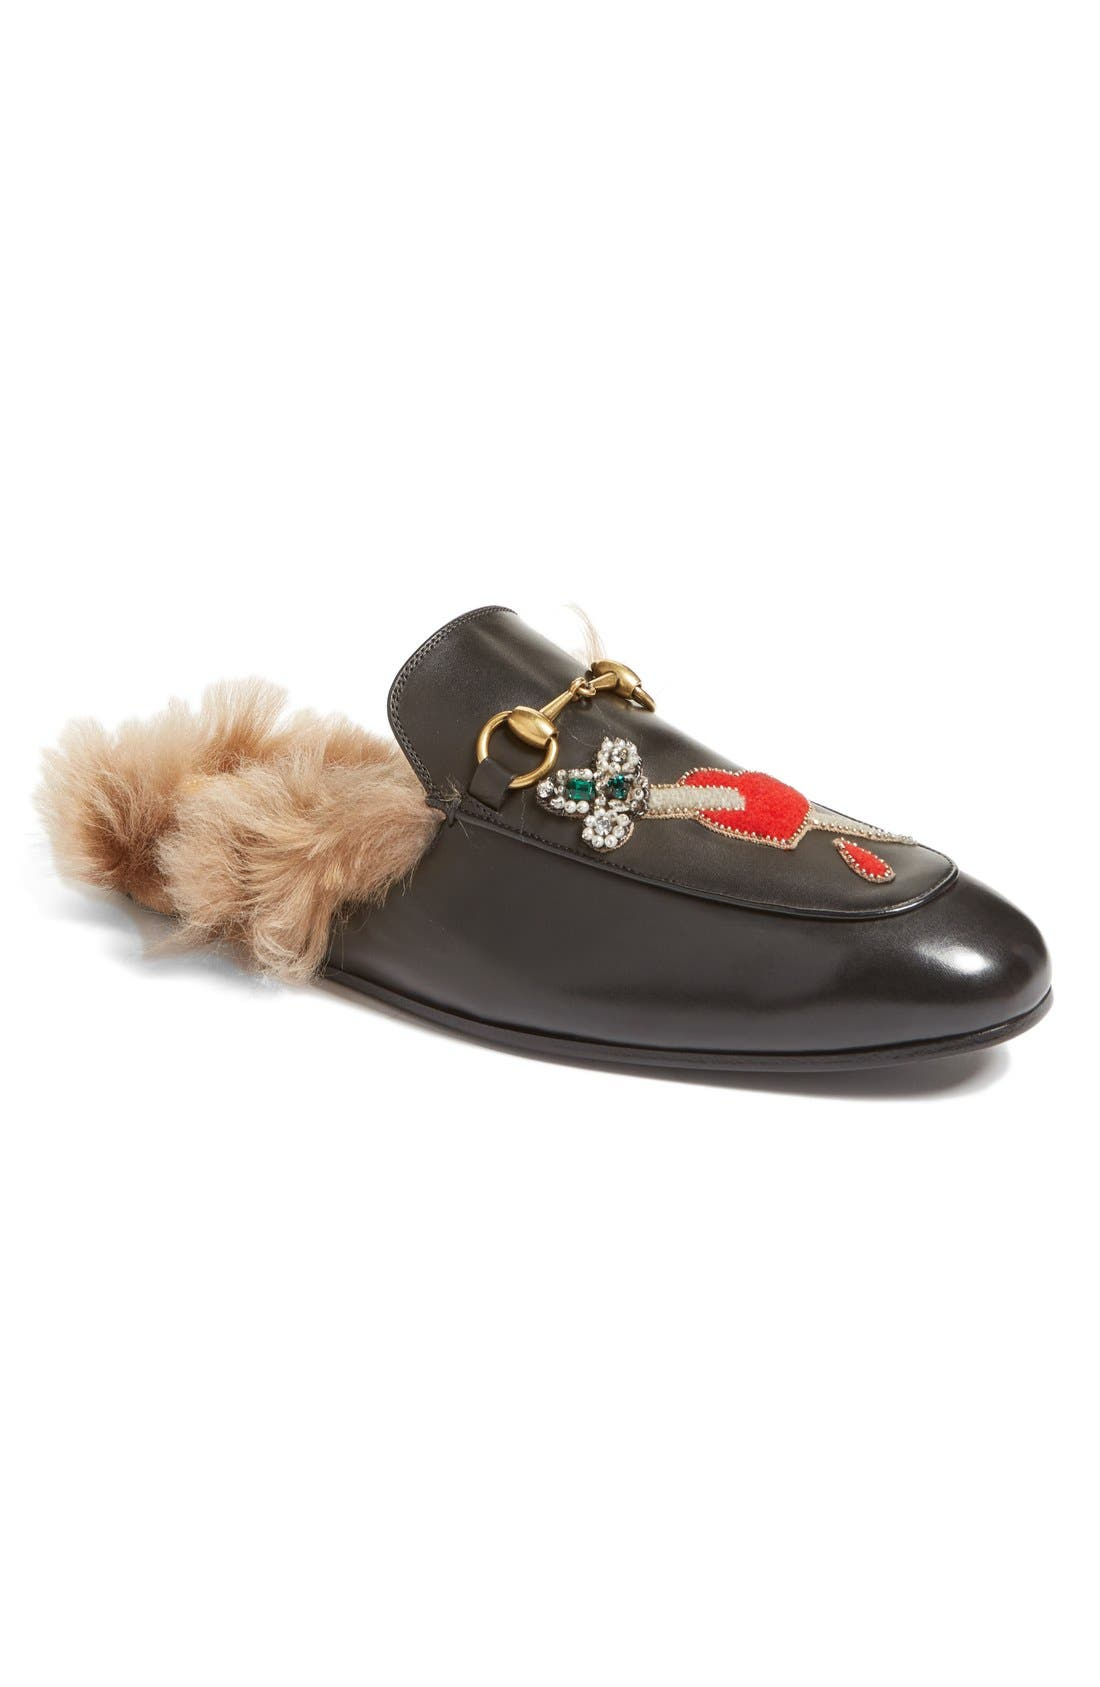 Main Image - Gucci Princetown Genuine Shearling Lined Mule Loafer (Men)